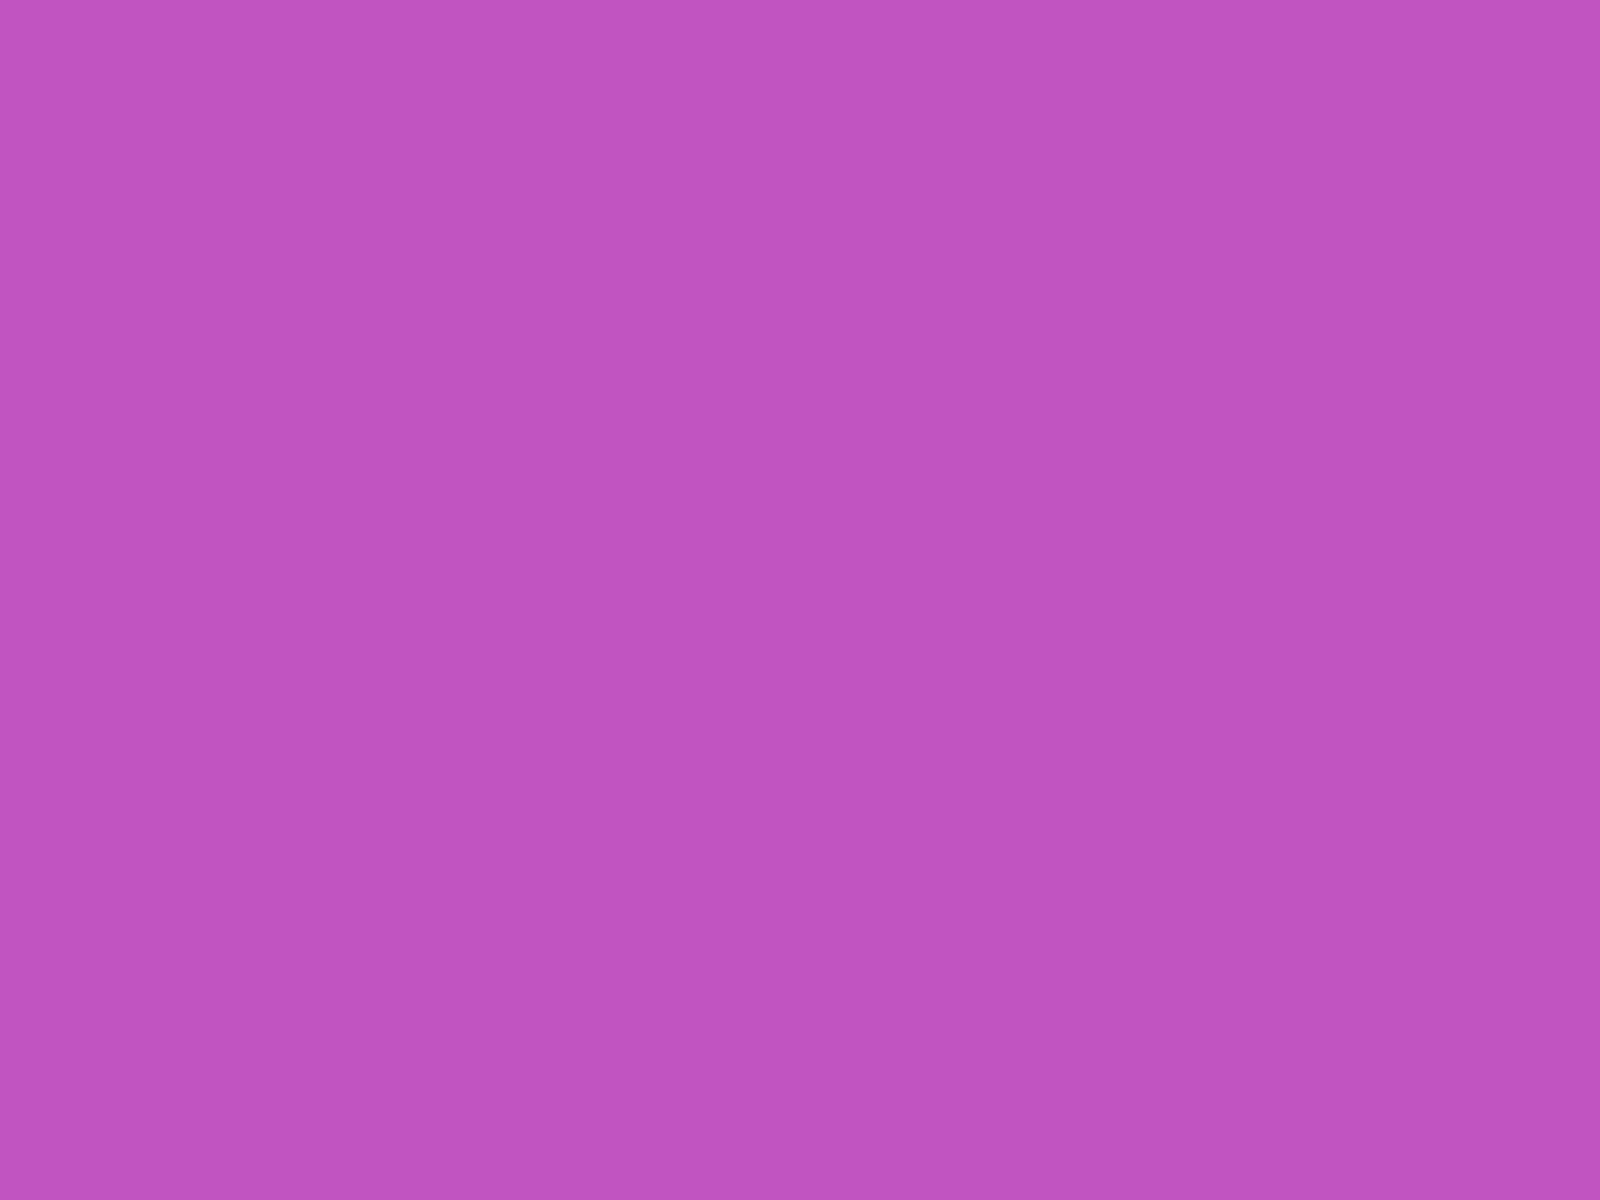 1600x1200 Fuchsia Crayola Solid Color Background